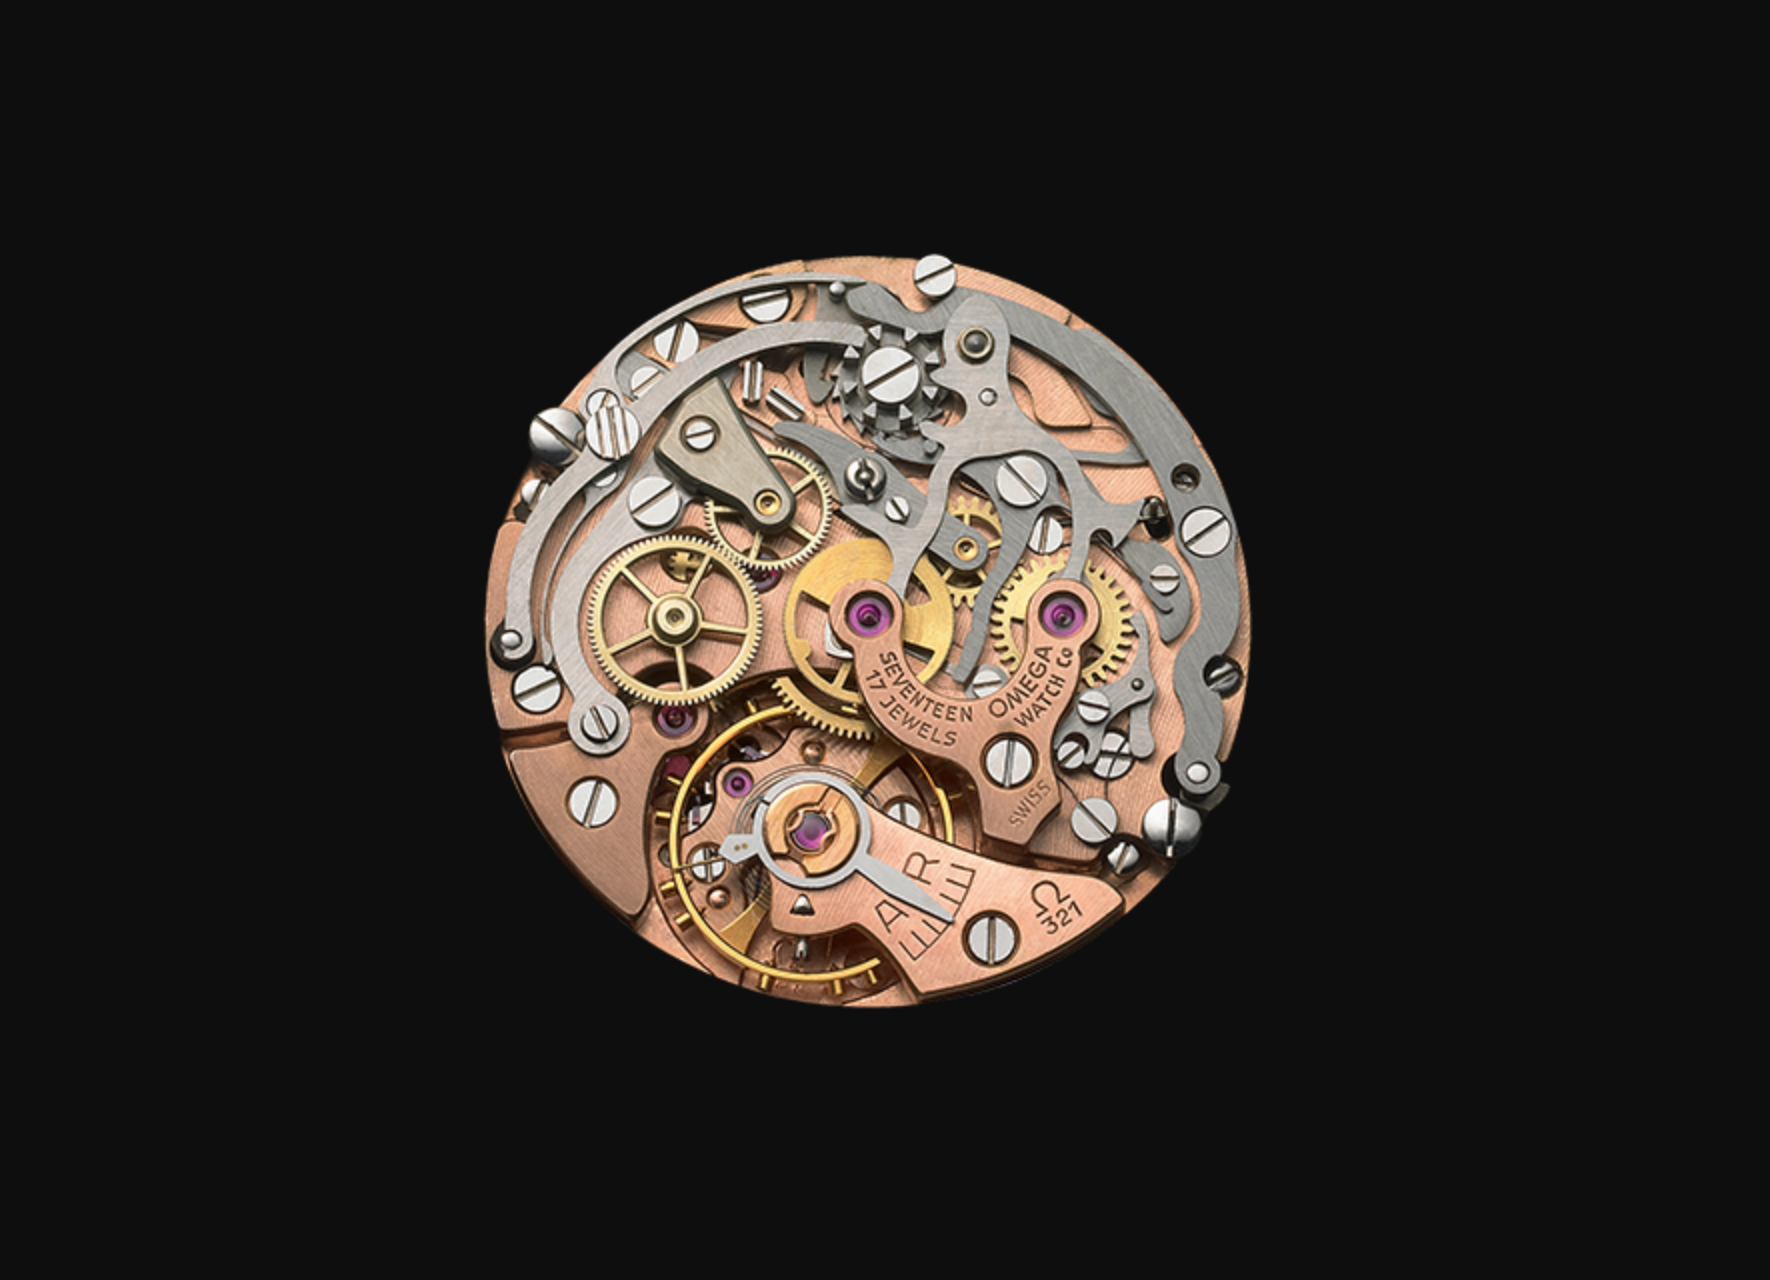 The Calber 321 Movement from Omega